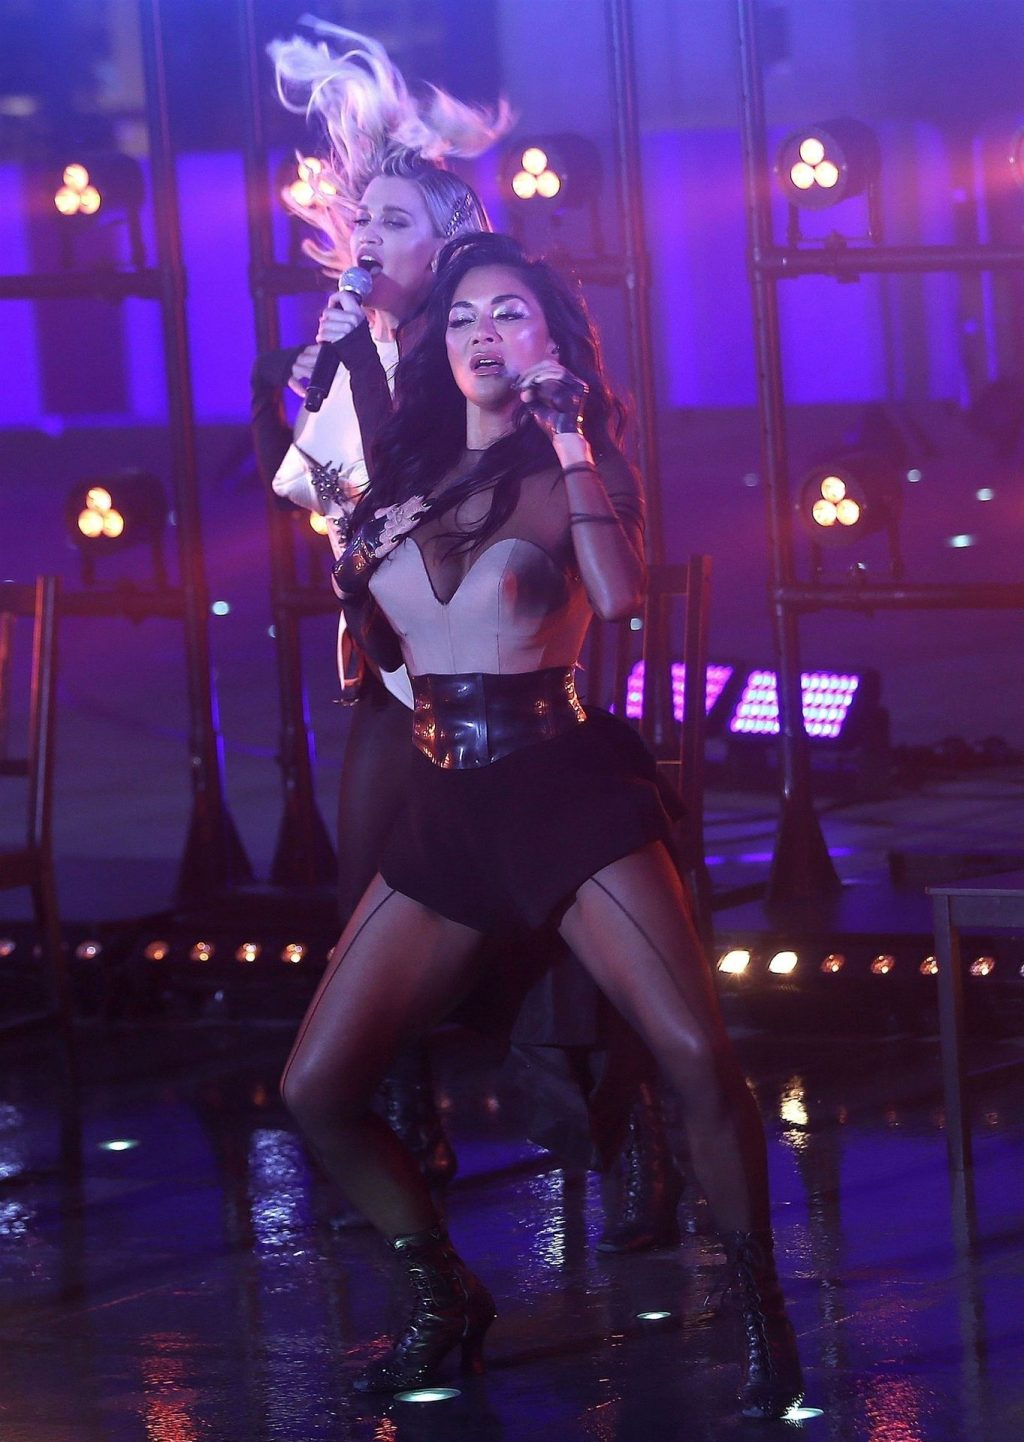 The Pussycat Dolls Performs at the BBC for the One Show (92 Photos)